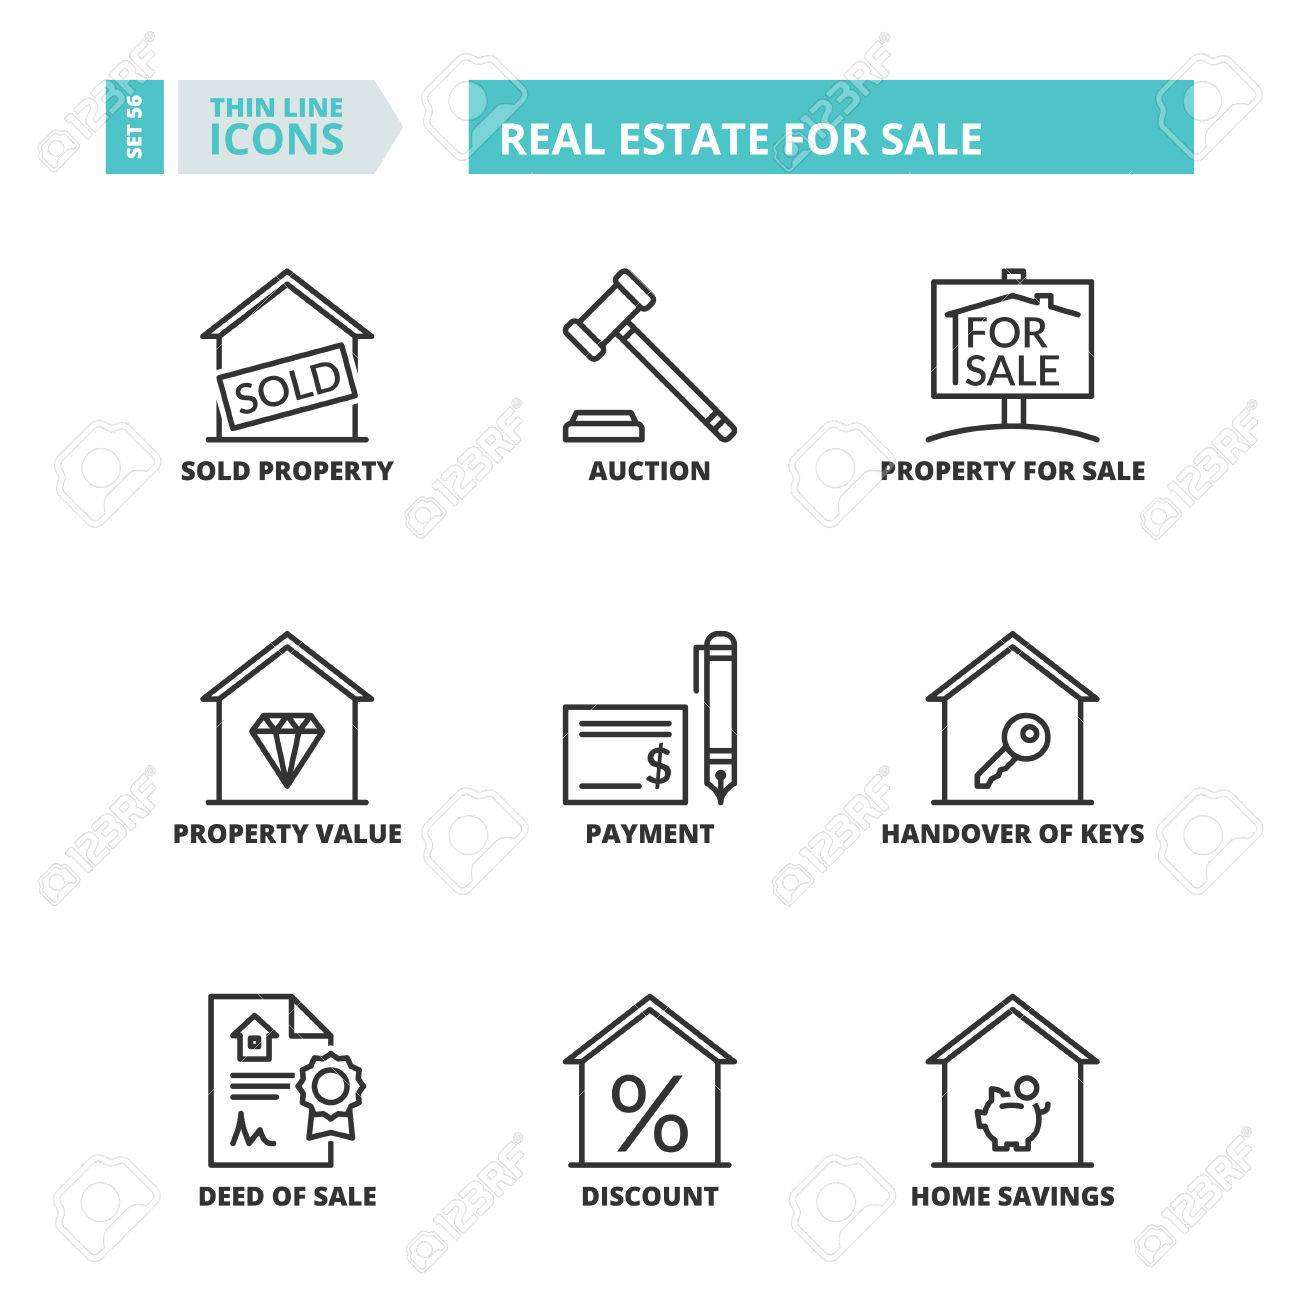 Flat Symbols About Real Estate For Sale Thin Line Icons Set